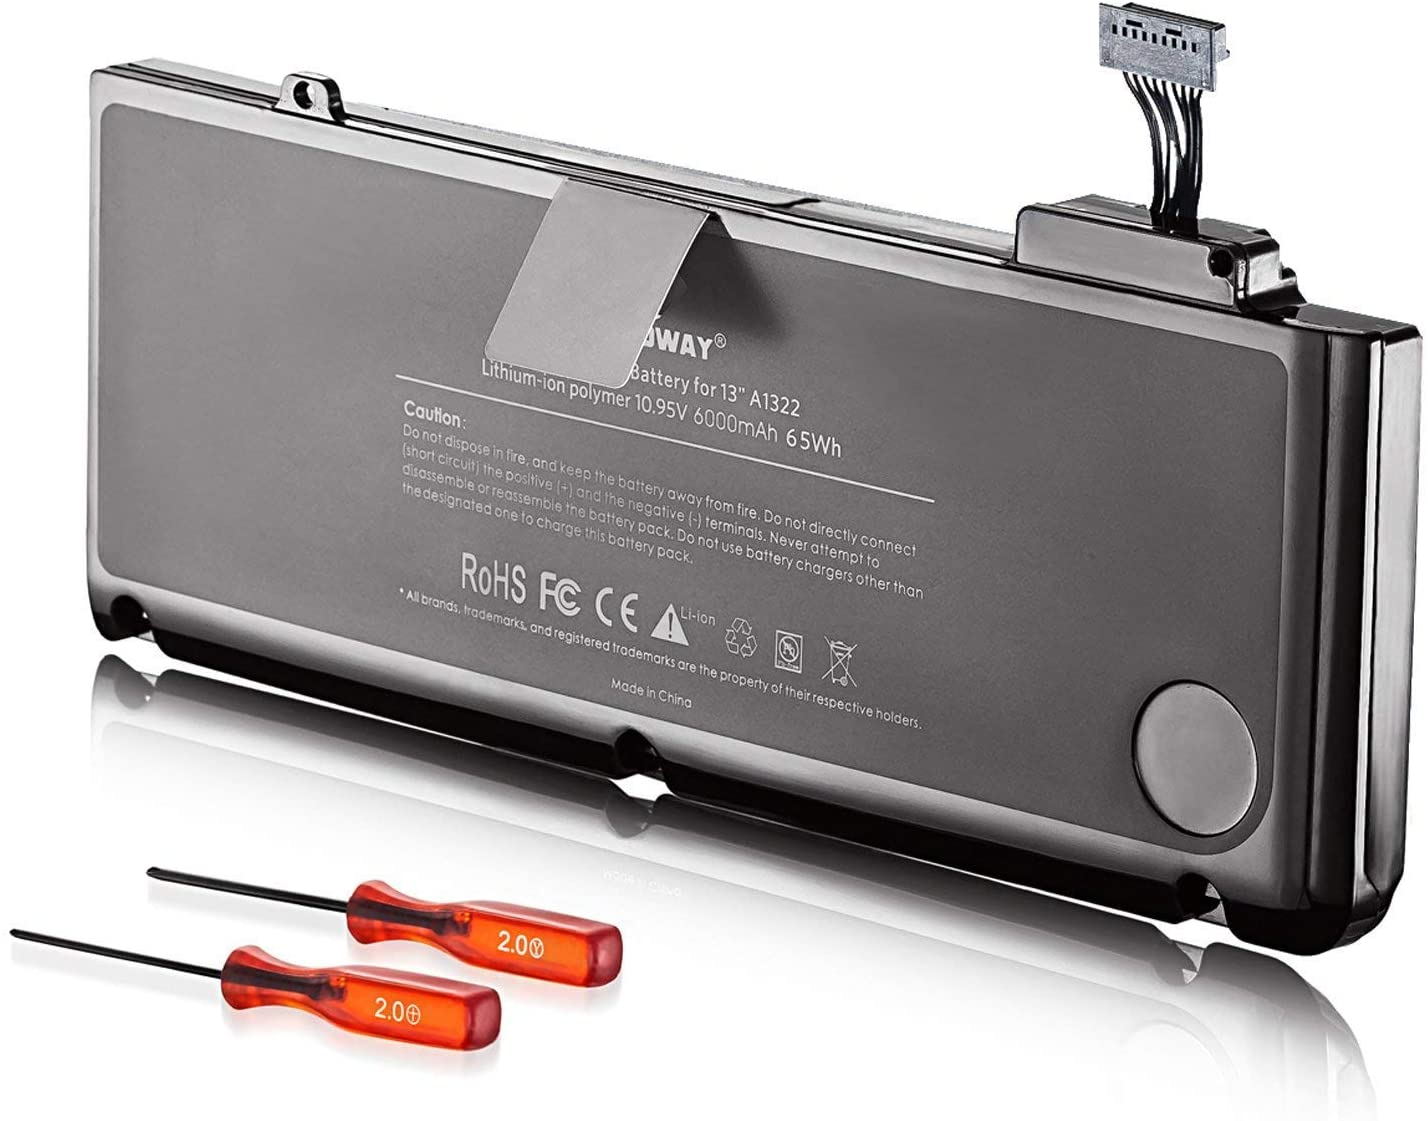 E EGOWAY Laptop Battery for MacBook Pro 13 Inch A1278 A1322 (10.95V 6000mAh)